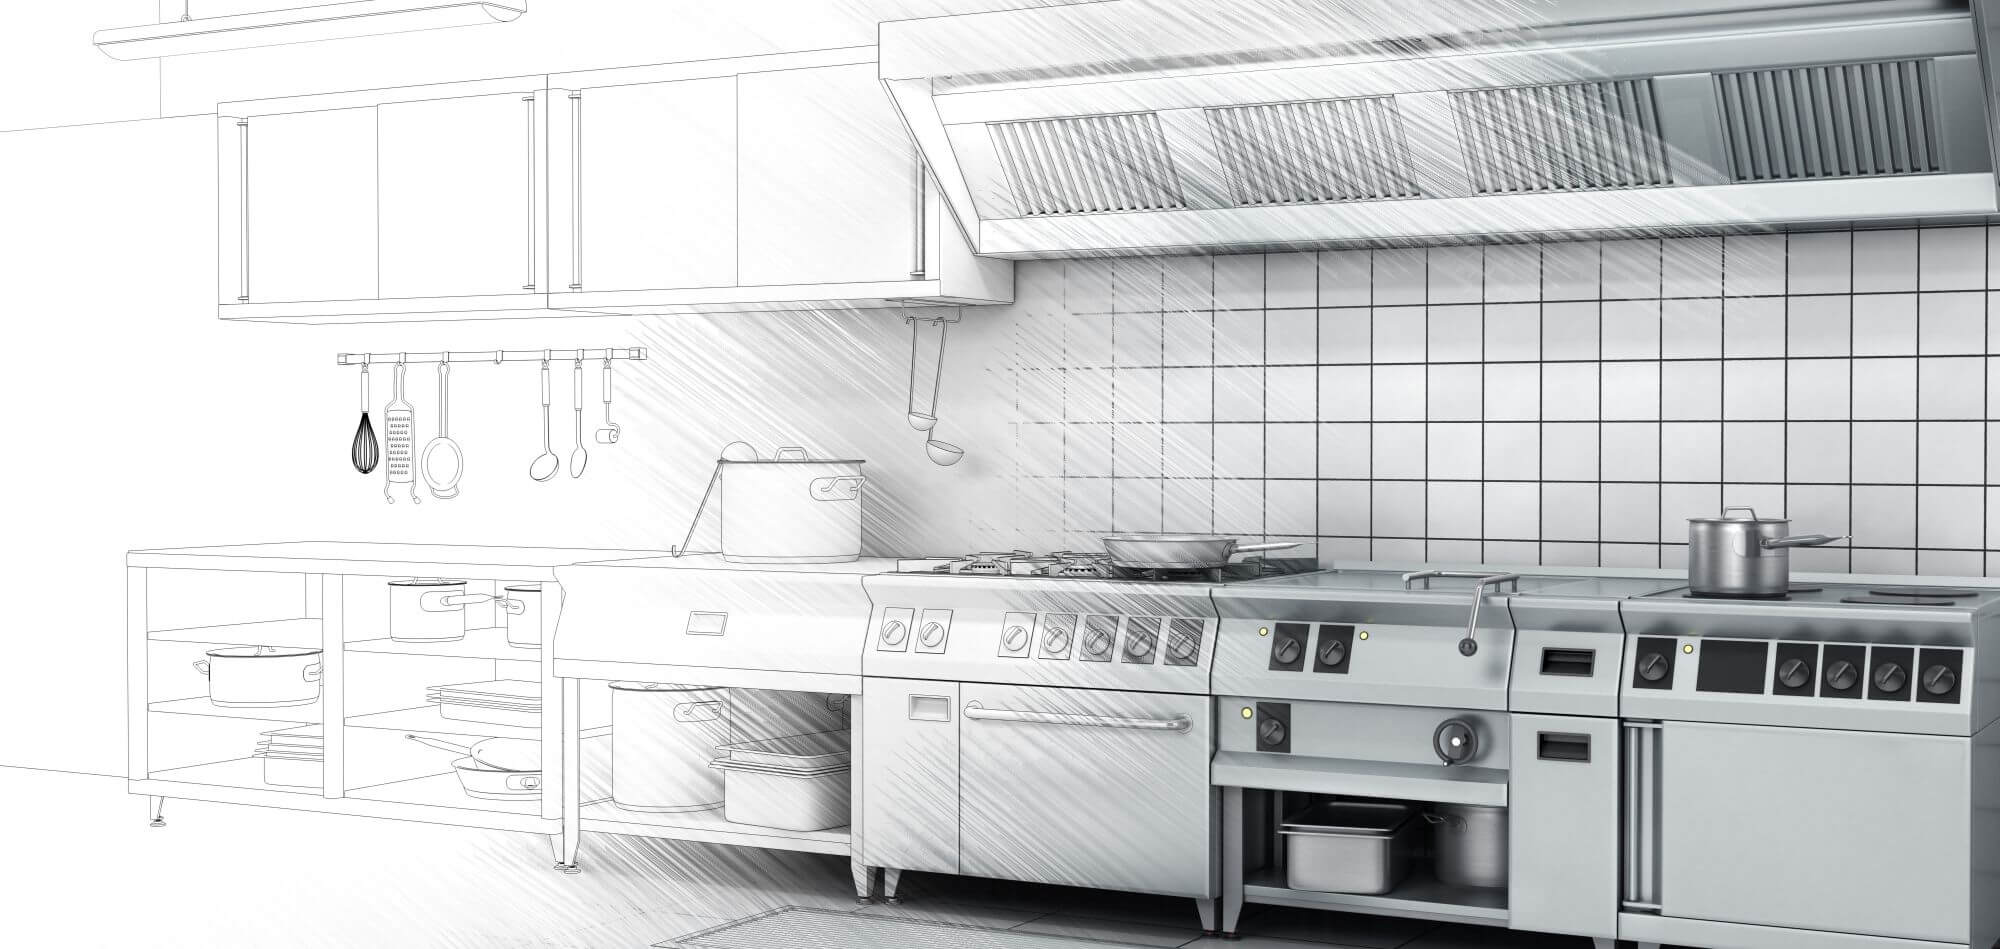 Graphic Showing Commercial Kitchen Sketch fading to Final Design